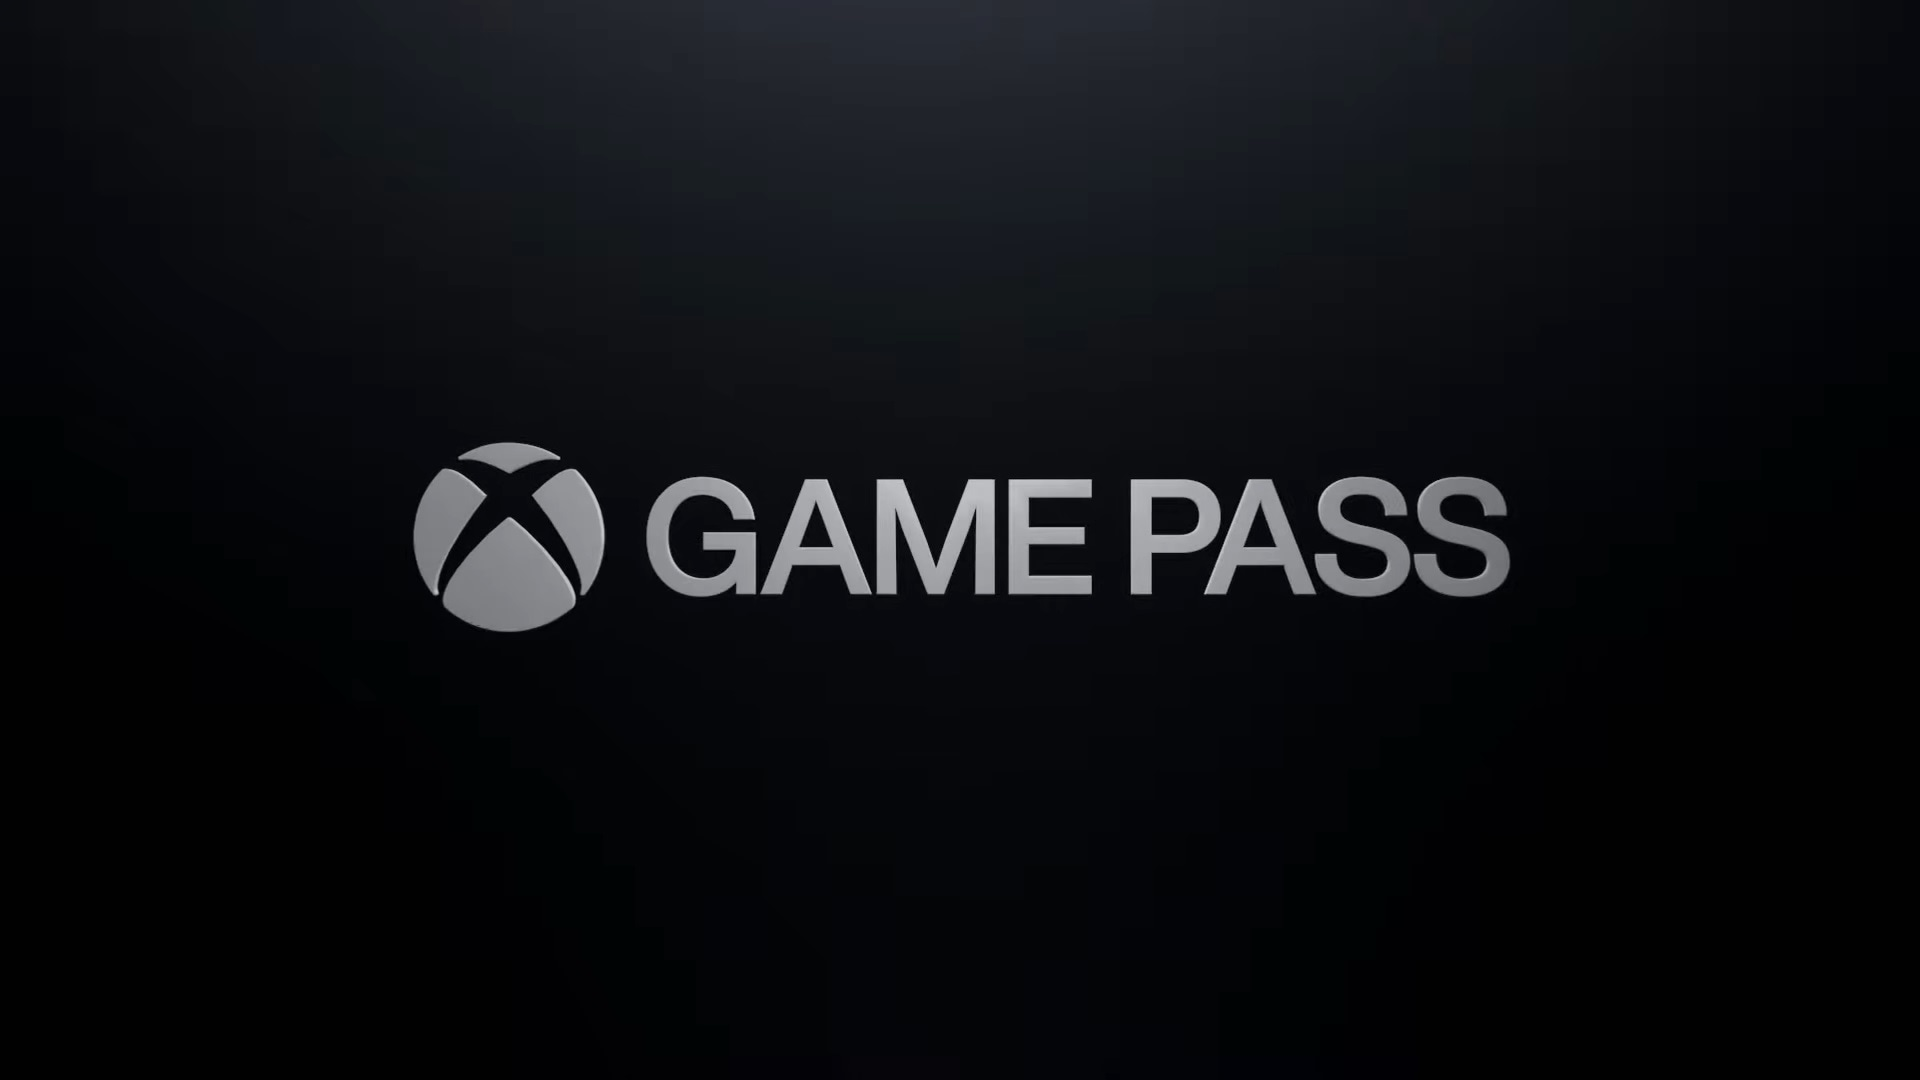 Microsoft Xbox Game Pass gaming service surpasses 18 million subscribers